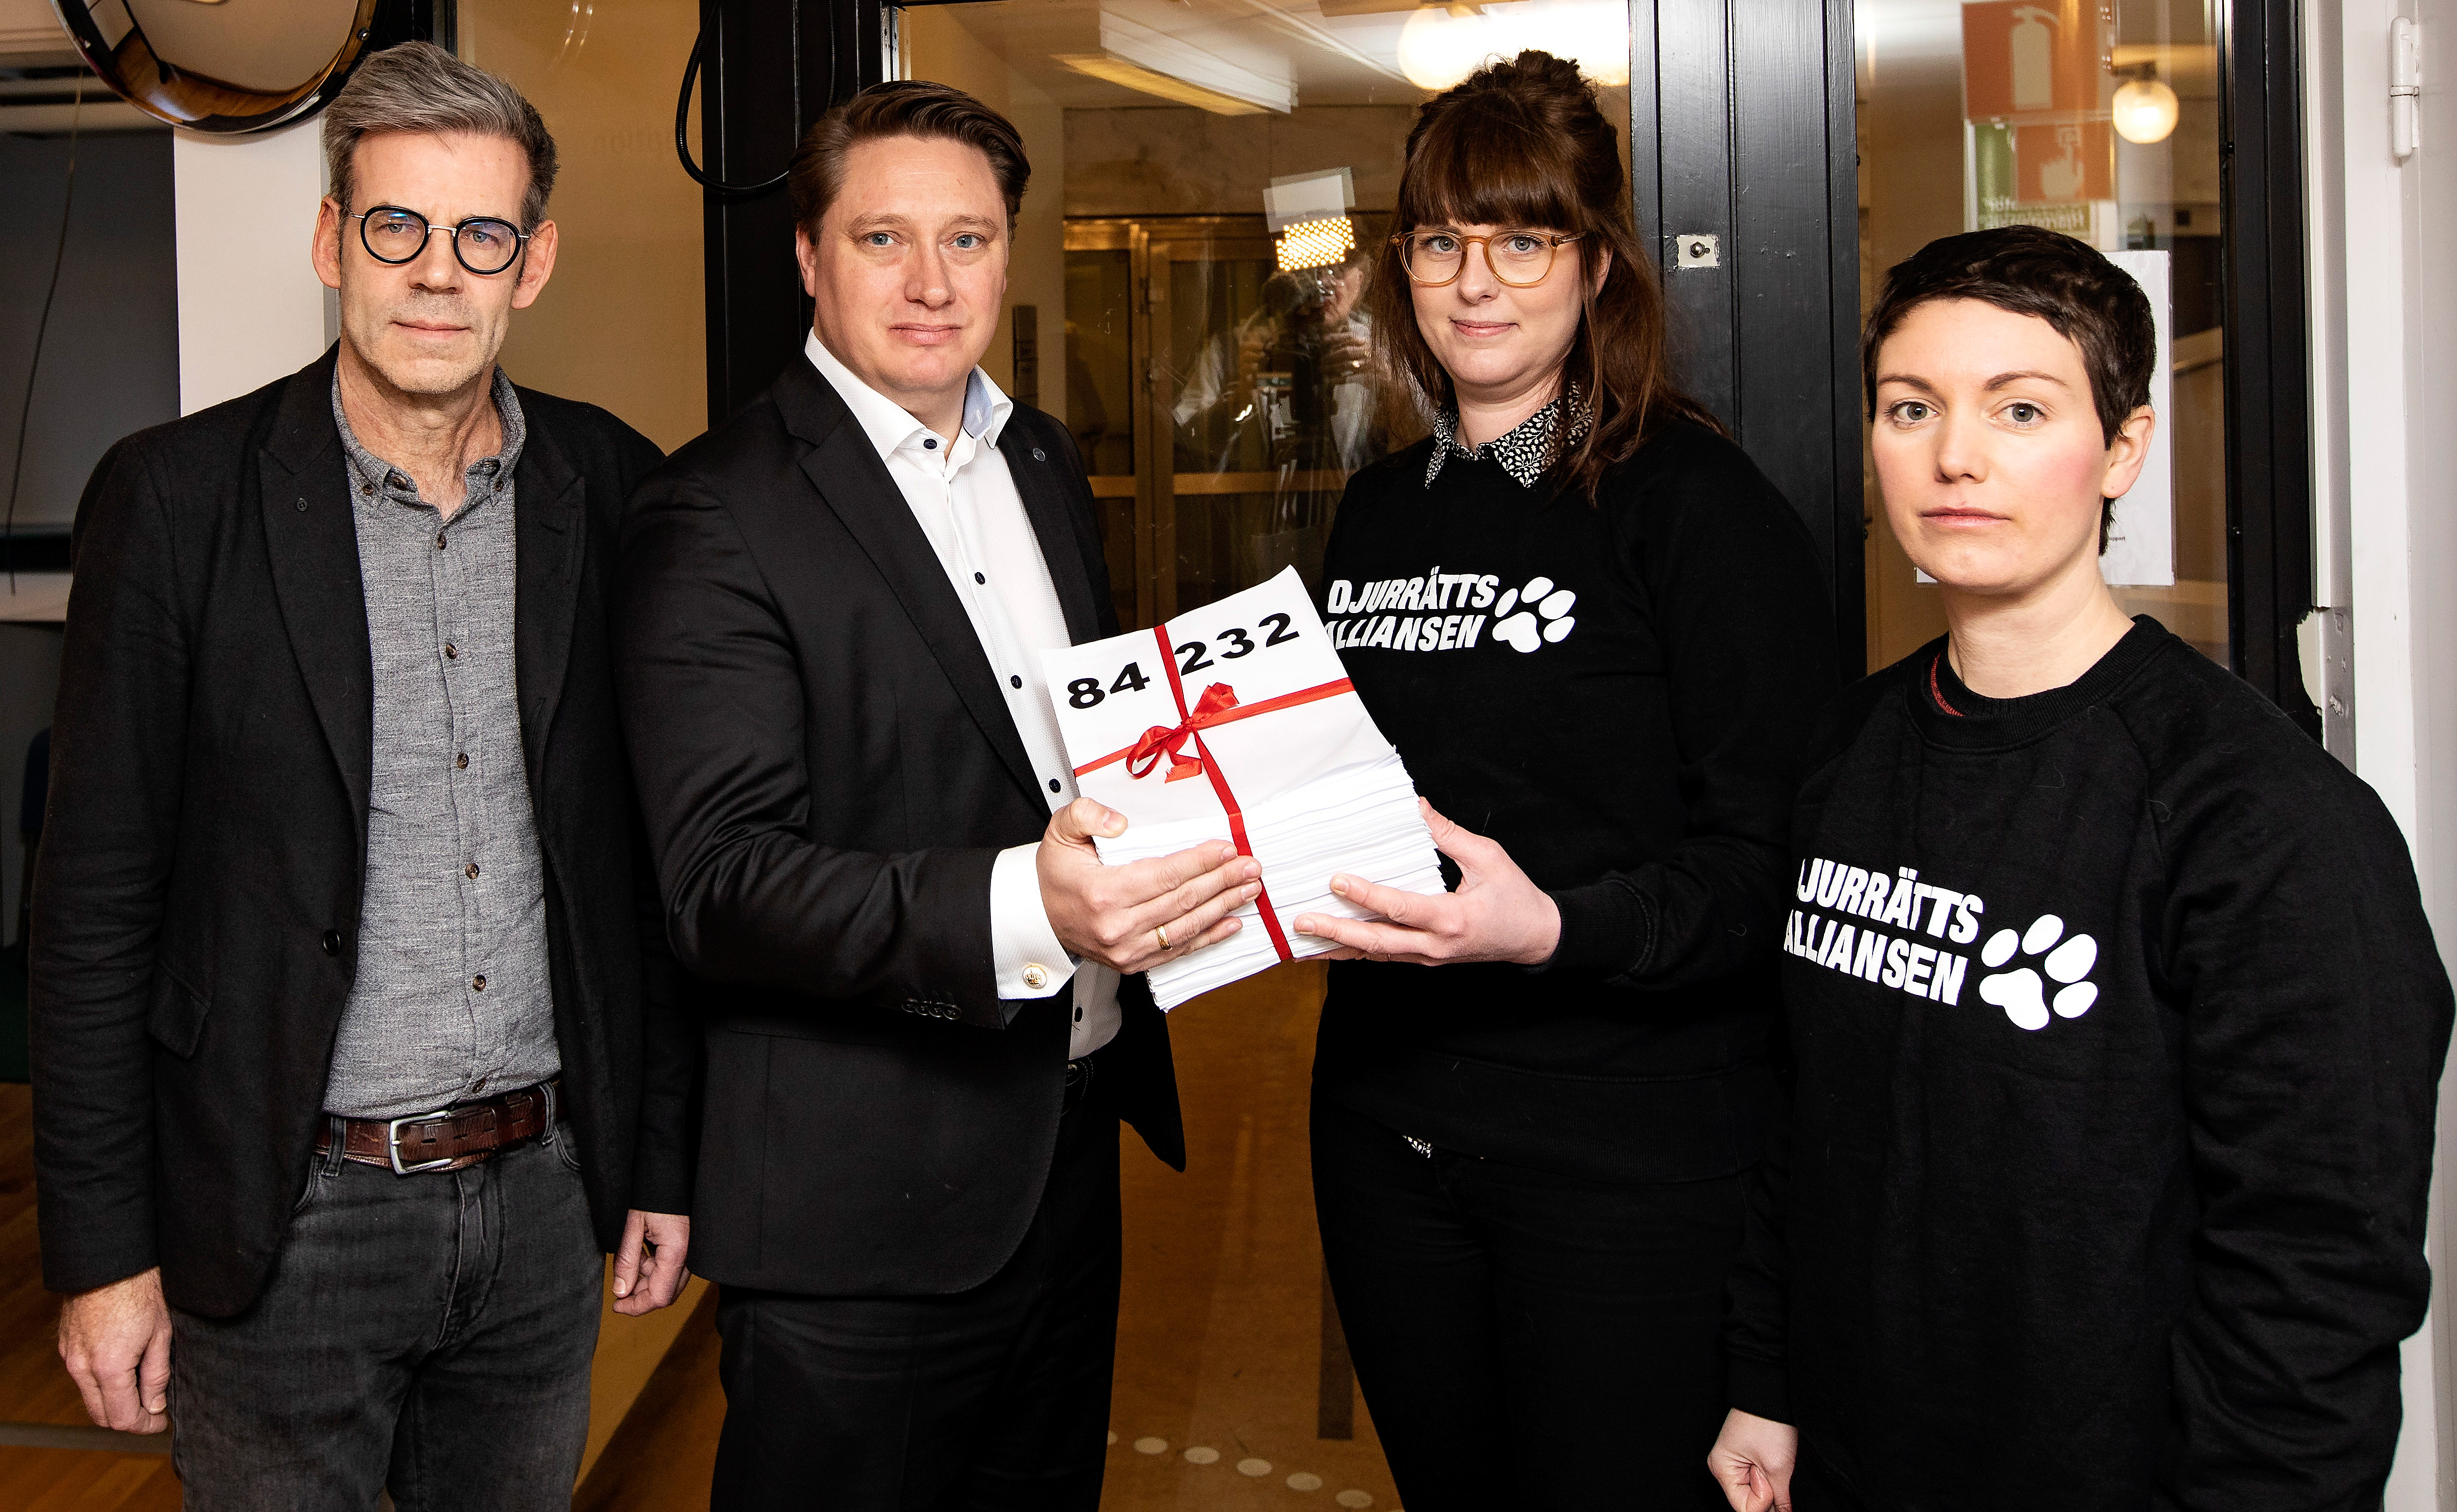 Göran Landberg and Mattias Goksör receive a petition from Malin Gustafsson and Emelie Wiberg of the Animal Rights Alliance.